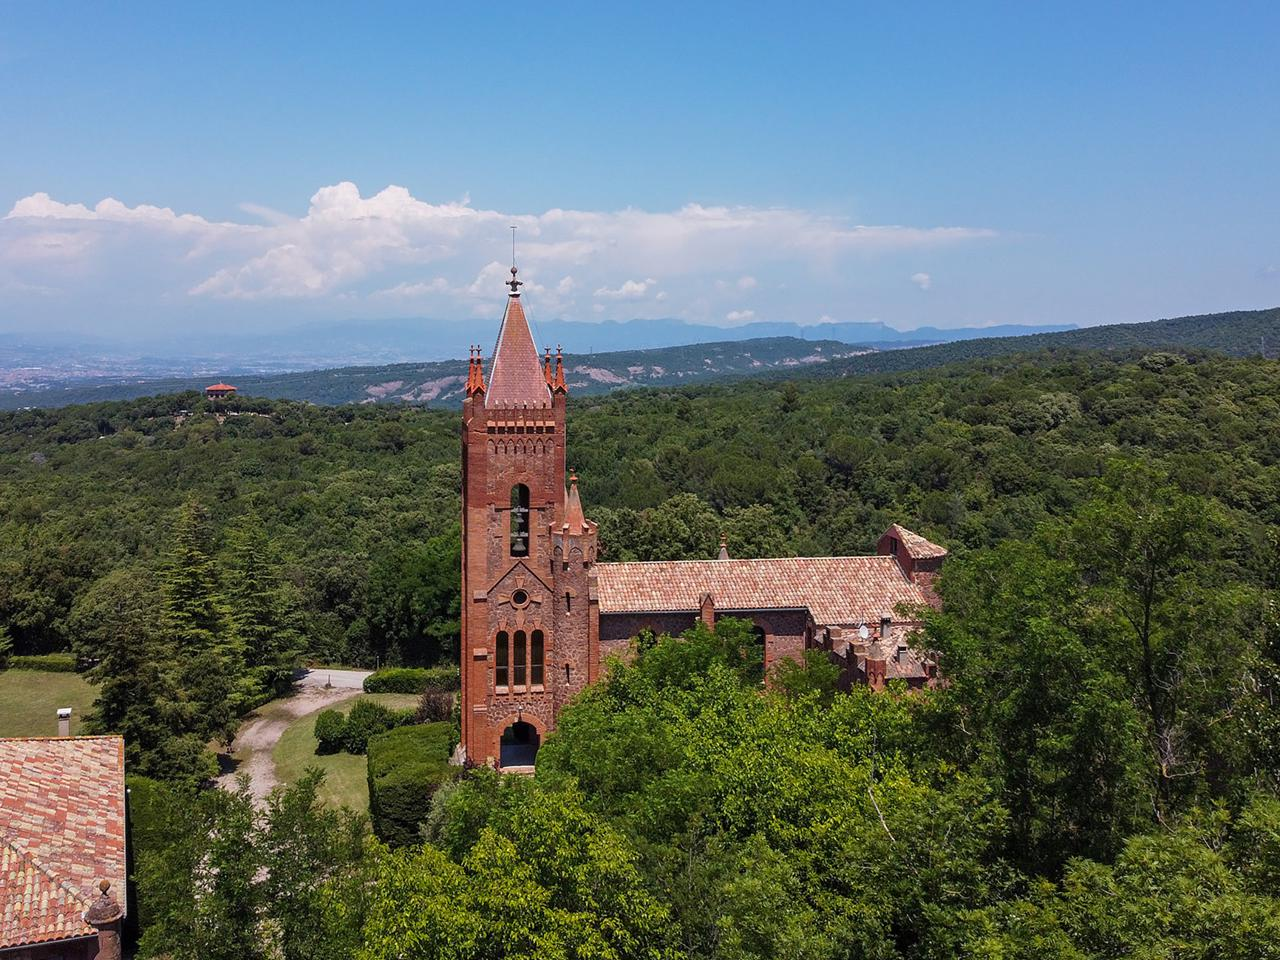 Casa de la Marquesa had many roles over the last 300 years: stately home, health clinic, youth hostel and most recently, rebirth as a wellness retreat, wrapped in 20-hectares of pristine countryside outside Barcelona.